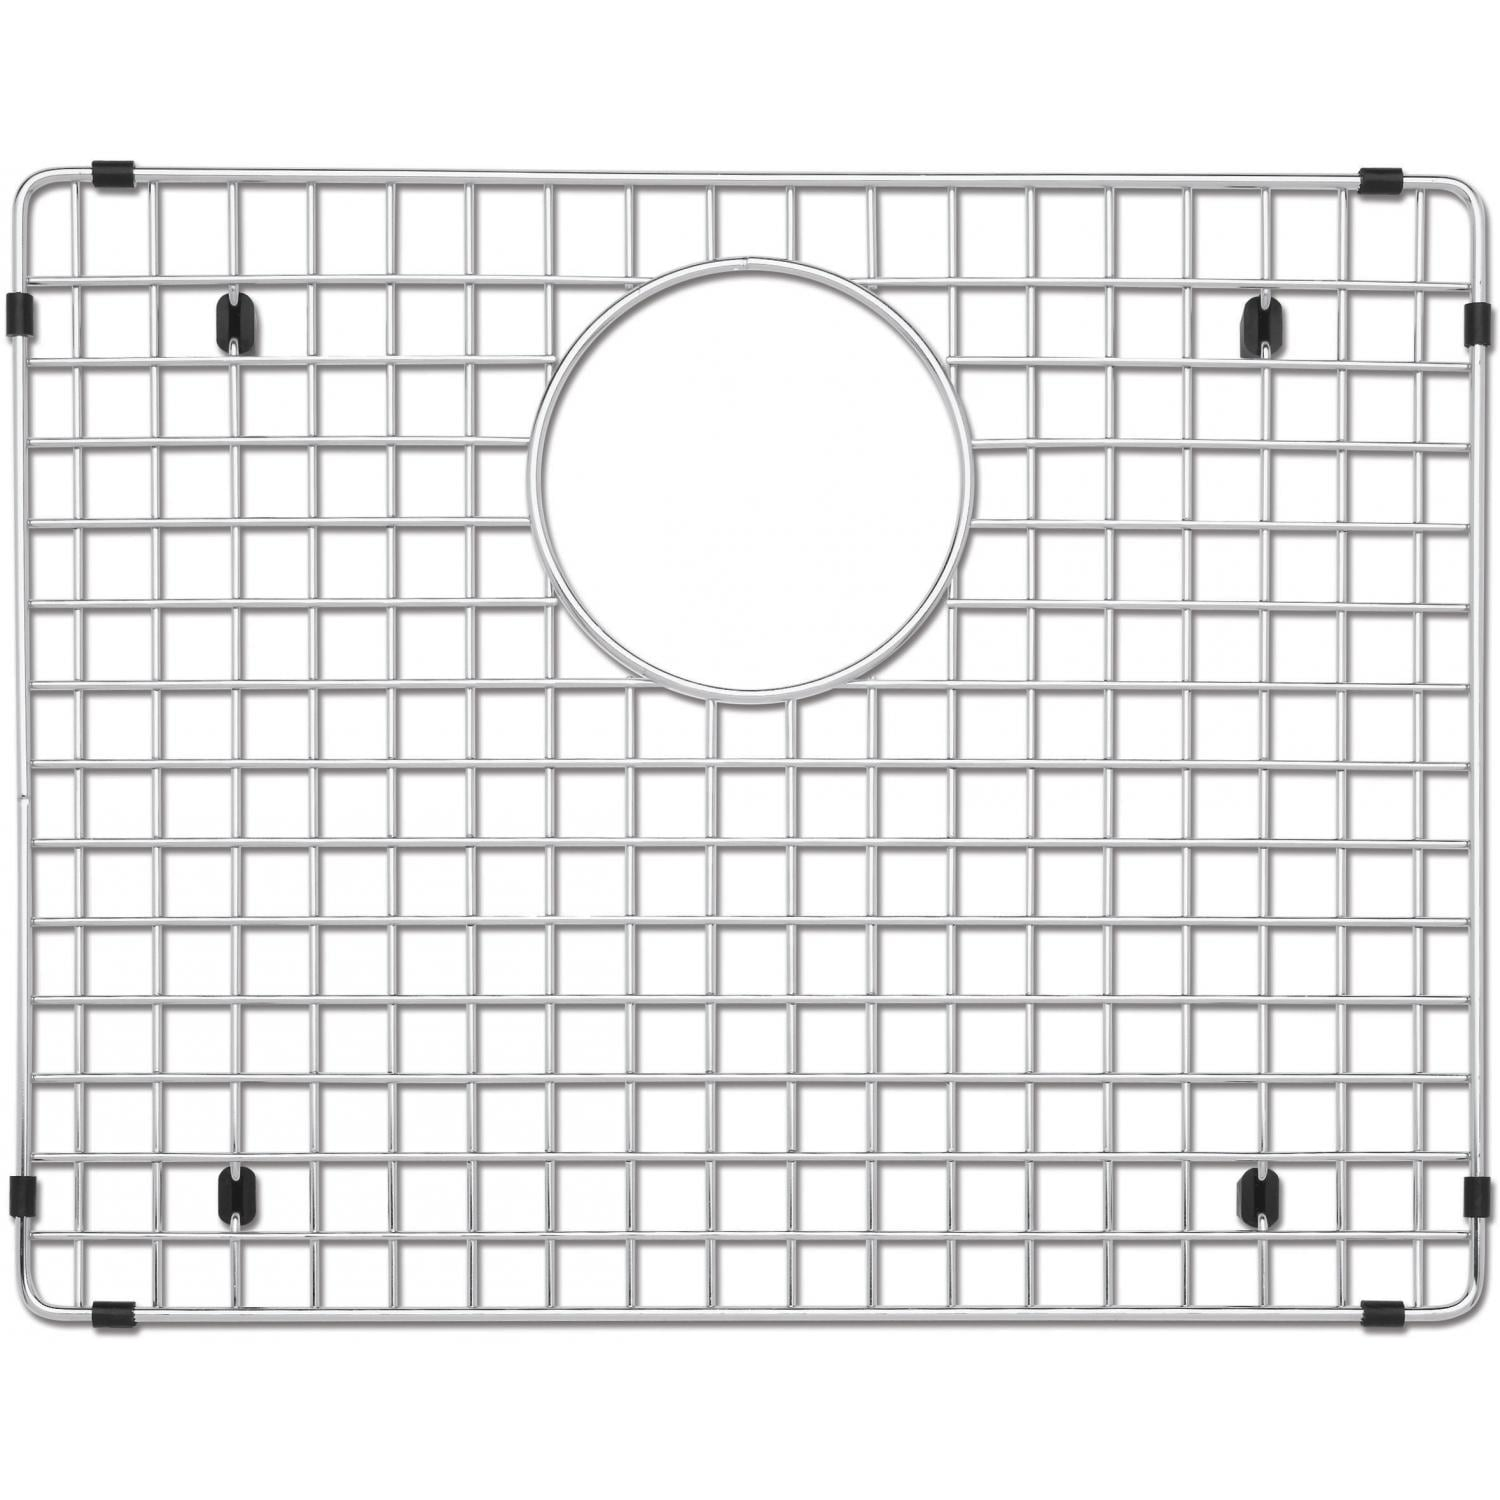 Blanco 20 X 16 Stainless Steel Sink Grid For Precision Undermount Sinks - 516271